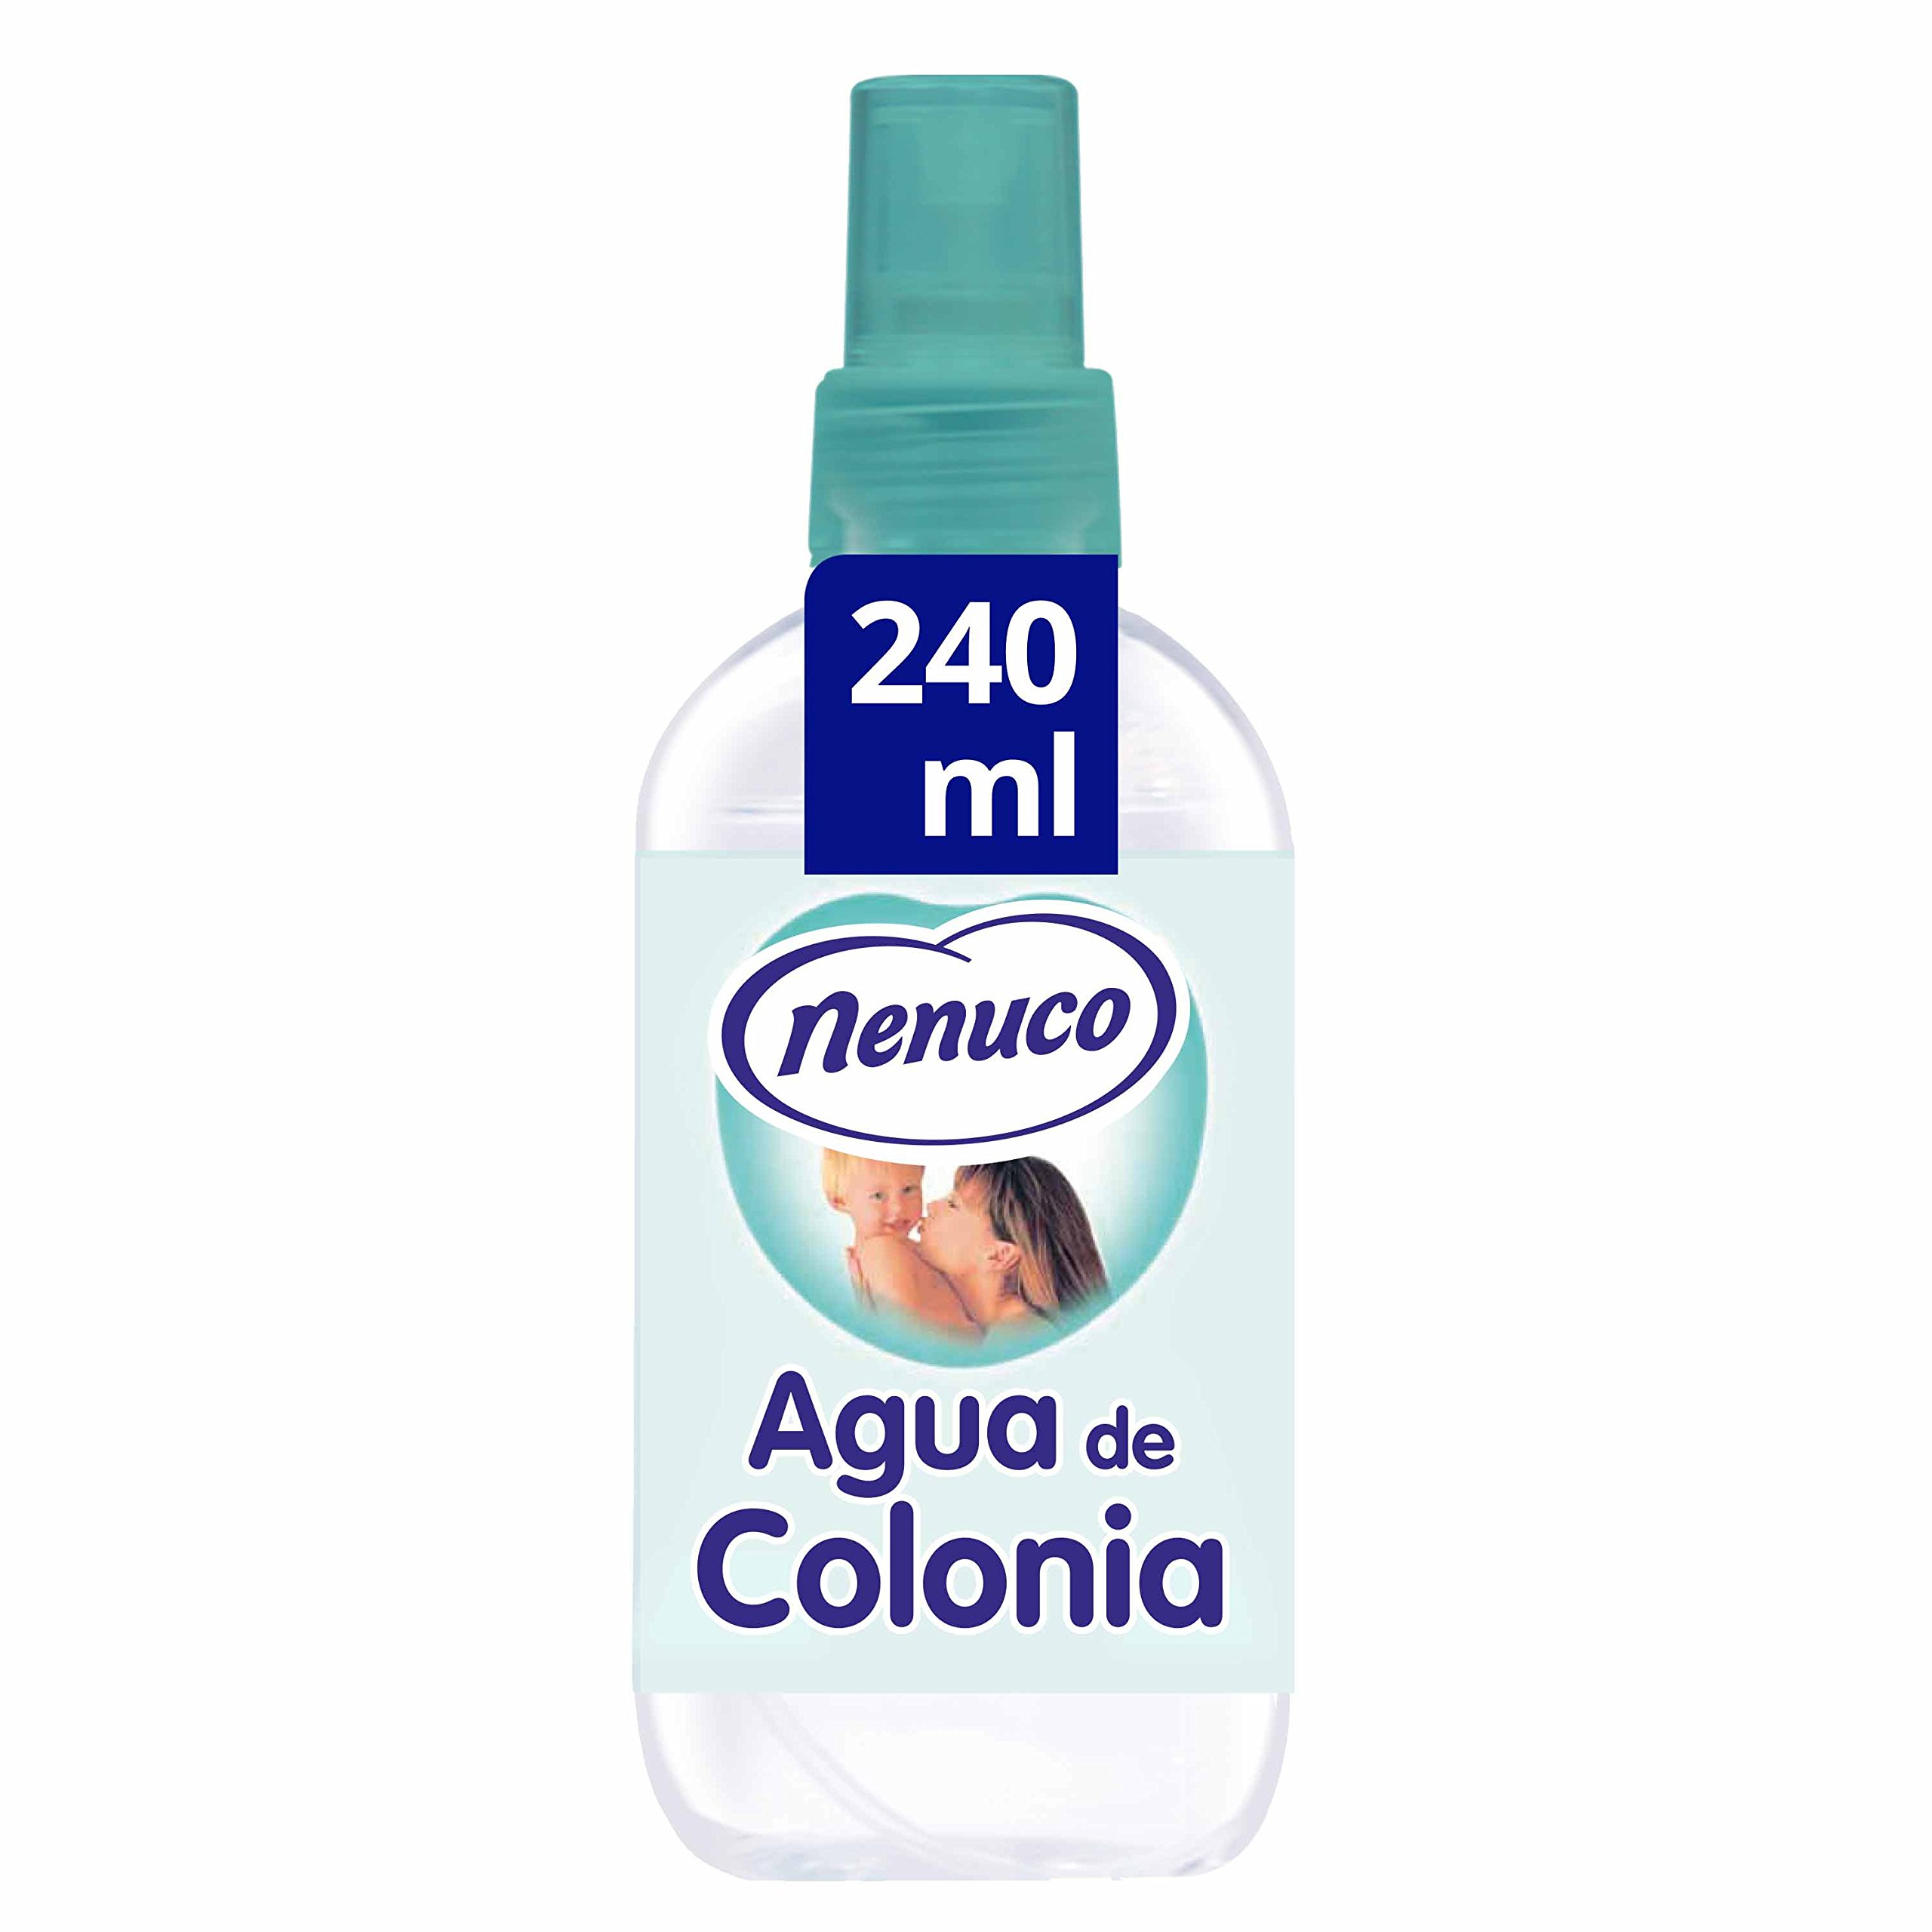 Nenuco Agua de Colonia - 240 ml product image